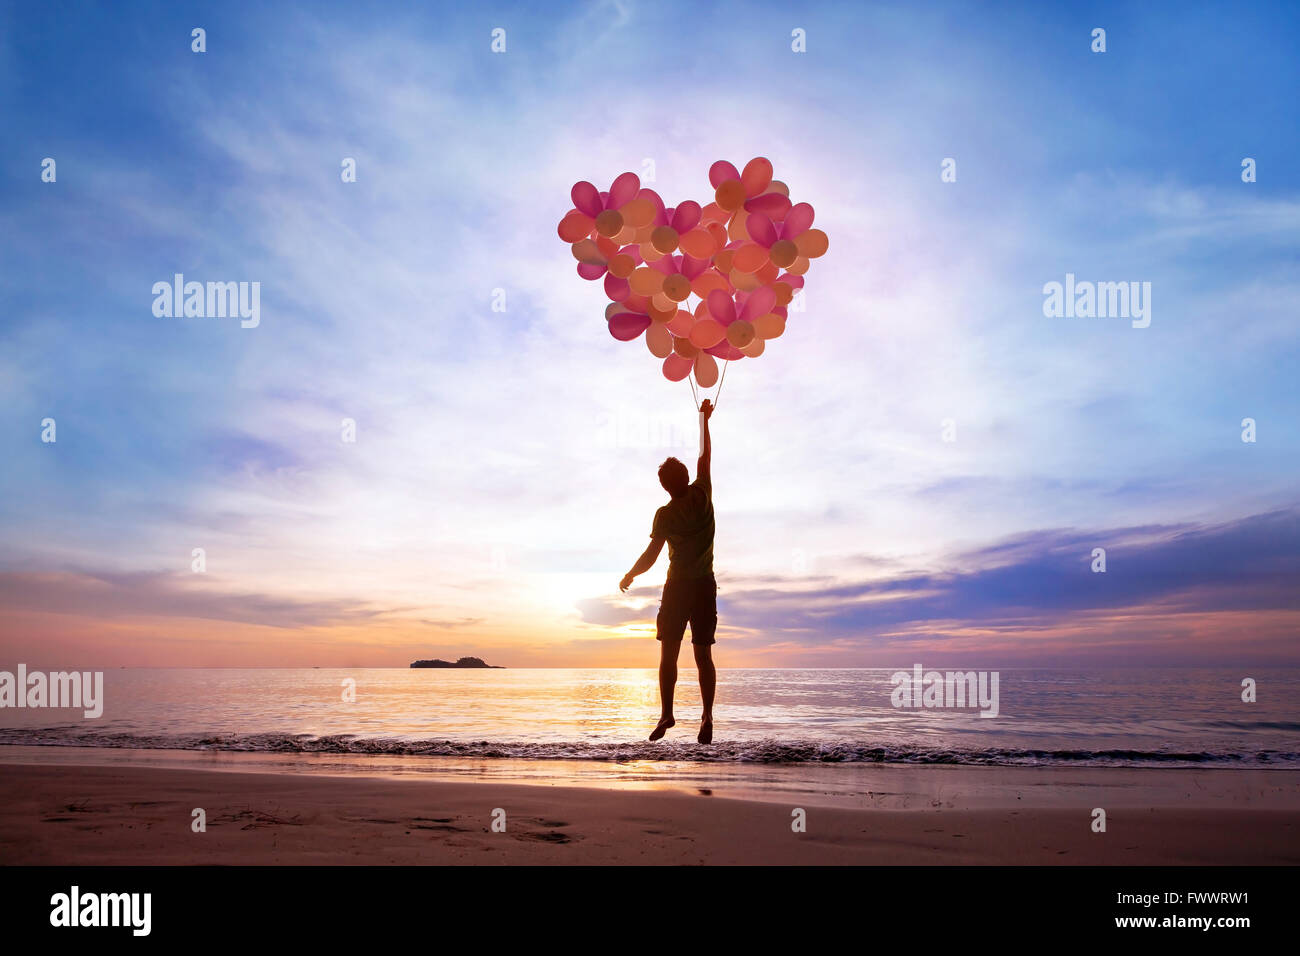 love concept, man flying with heart from balloons, fall in love - Stock Image